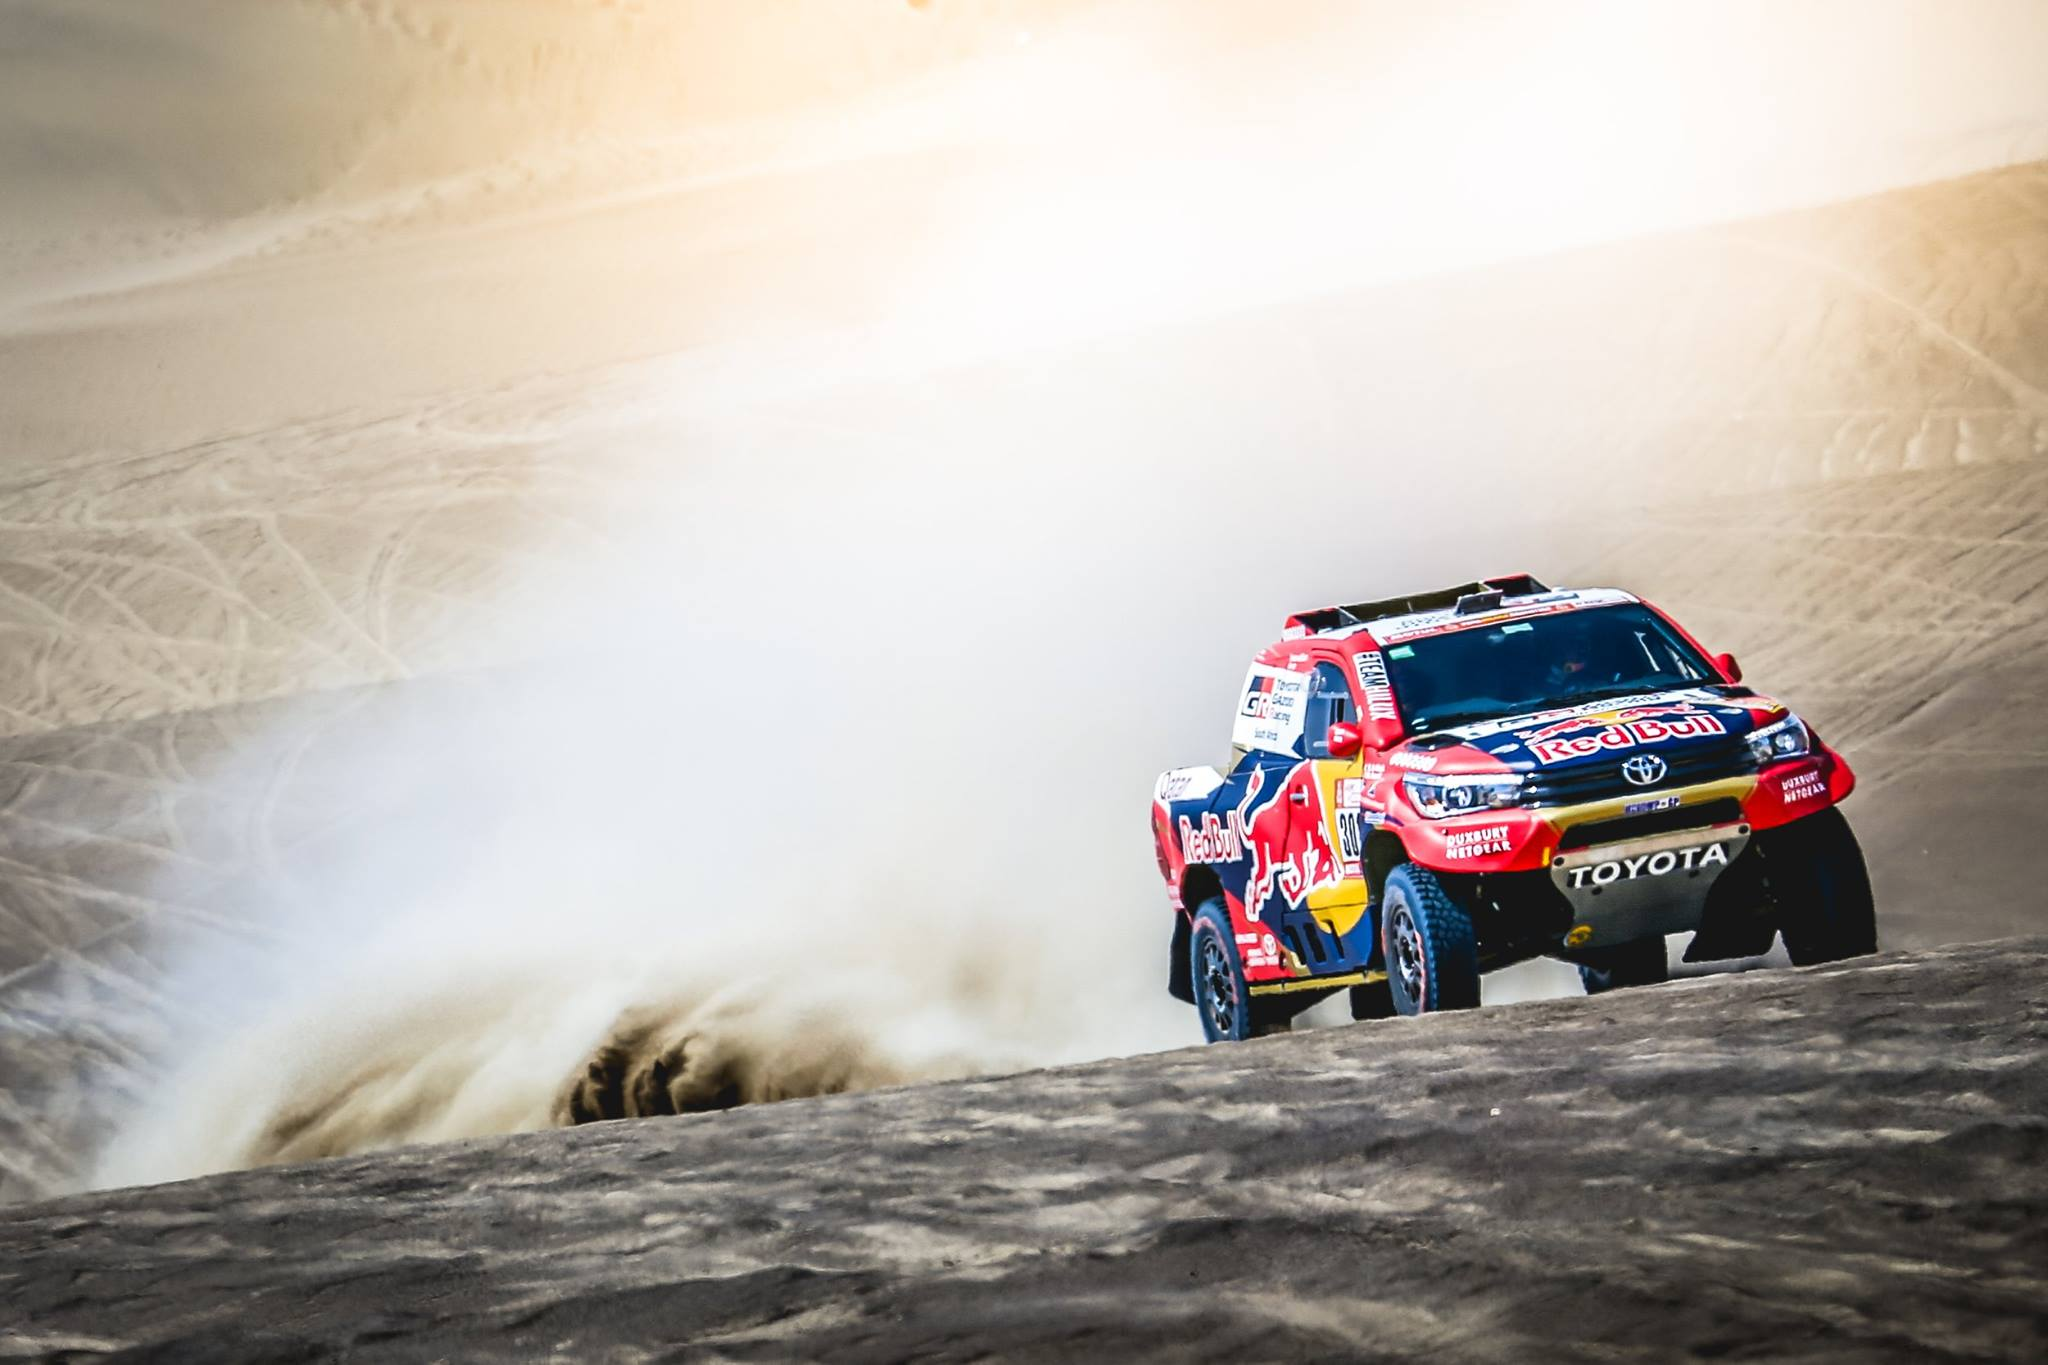 Rally Dakar 2018 Day 1 (4)